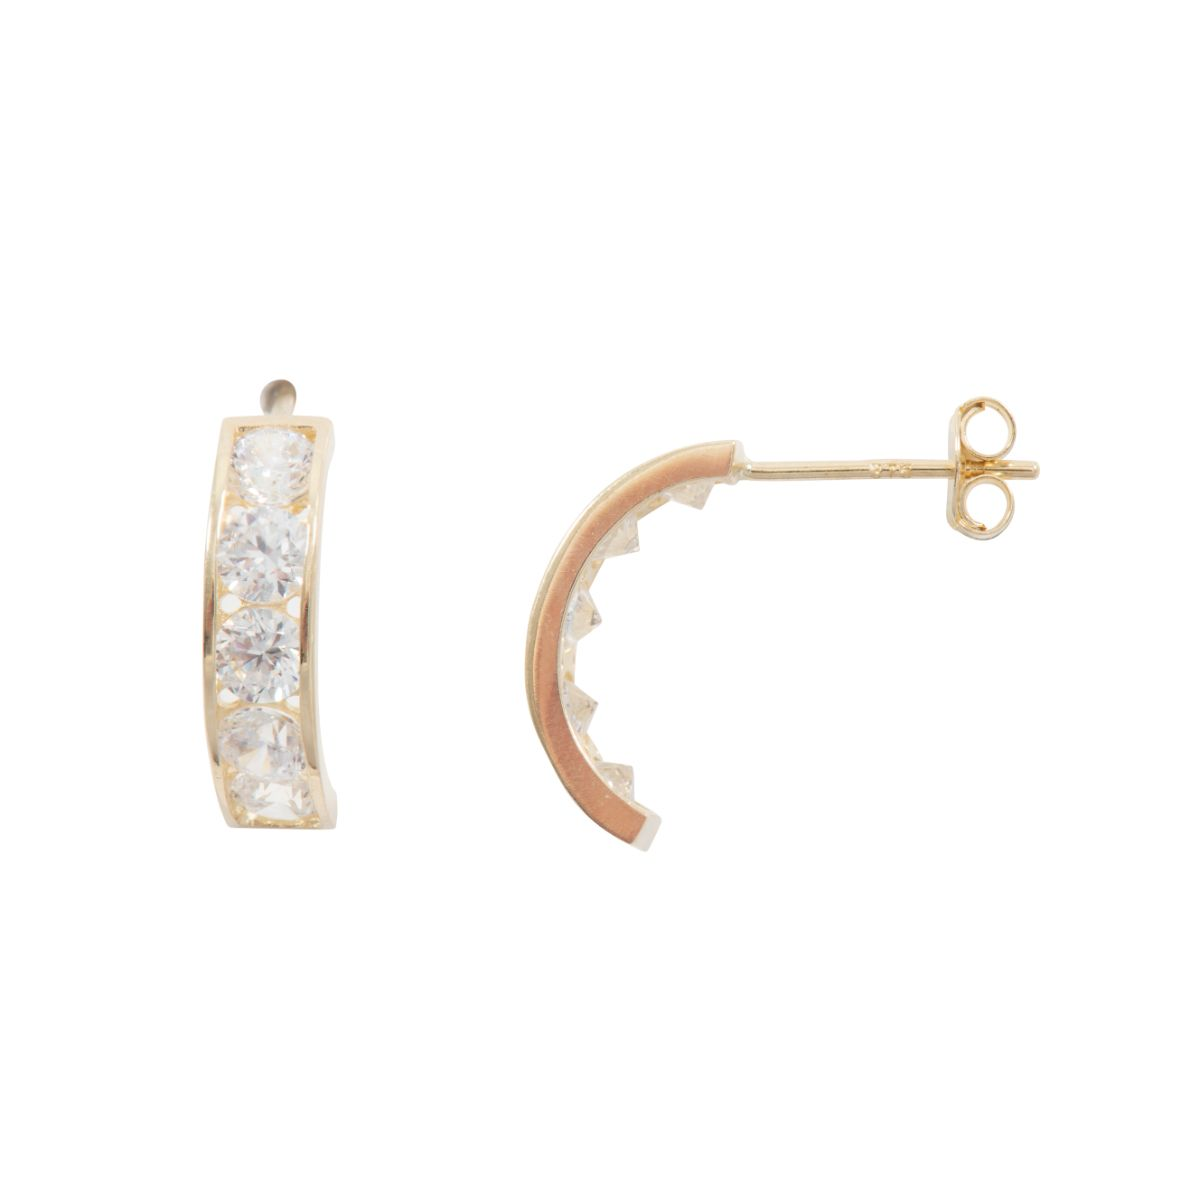 CZ Half Hoop Earrings - 3HPYRA